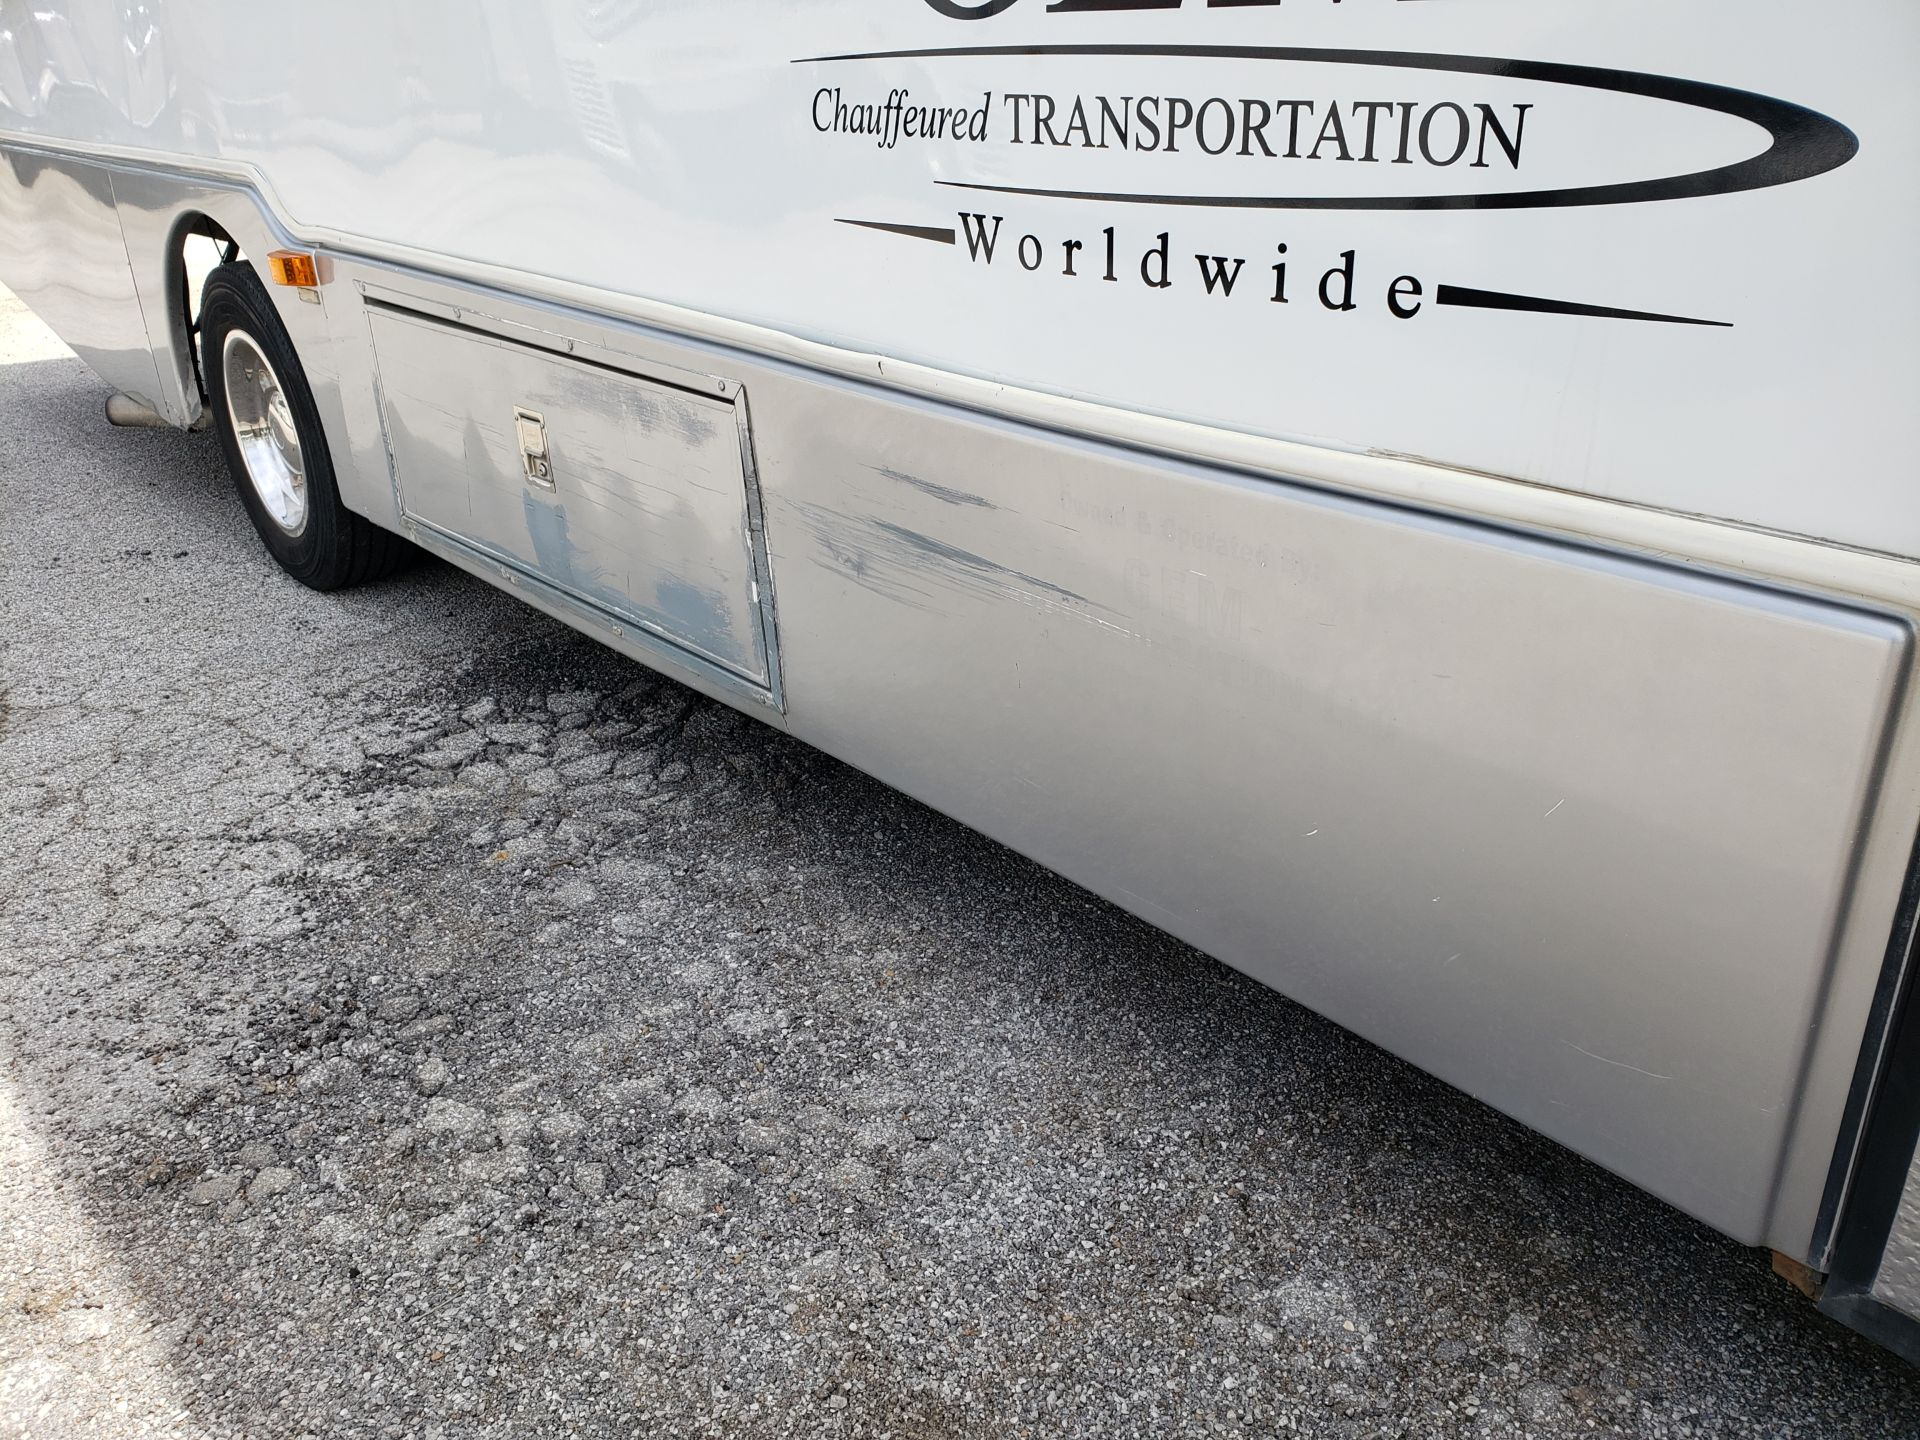 2006 Chevrolet C5500 30-Pass General Coach Champion Bus - Image 22 of 23